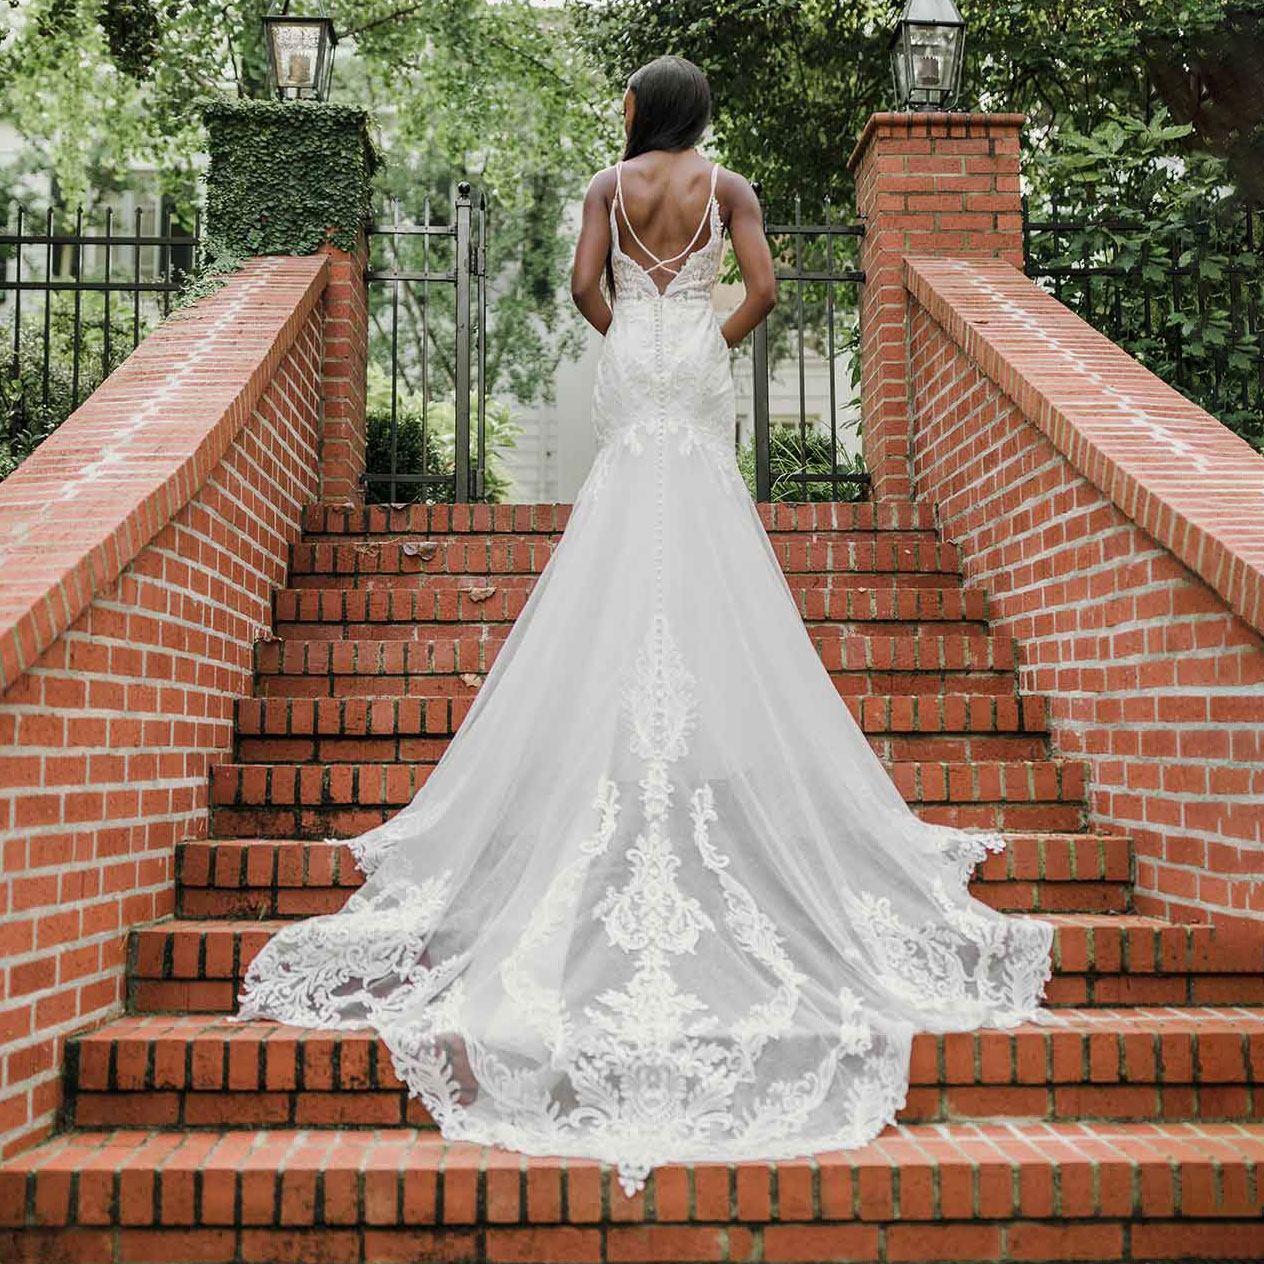 Sleeveless fit-and-flare bridal gown from Essense of Australia